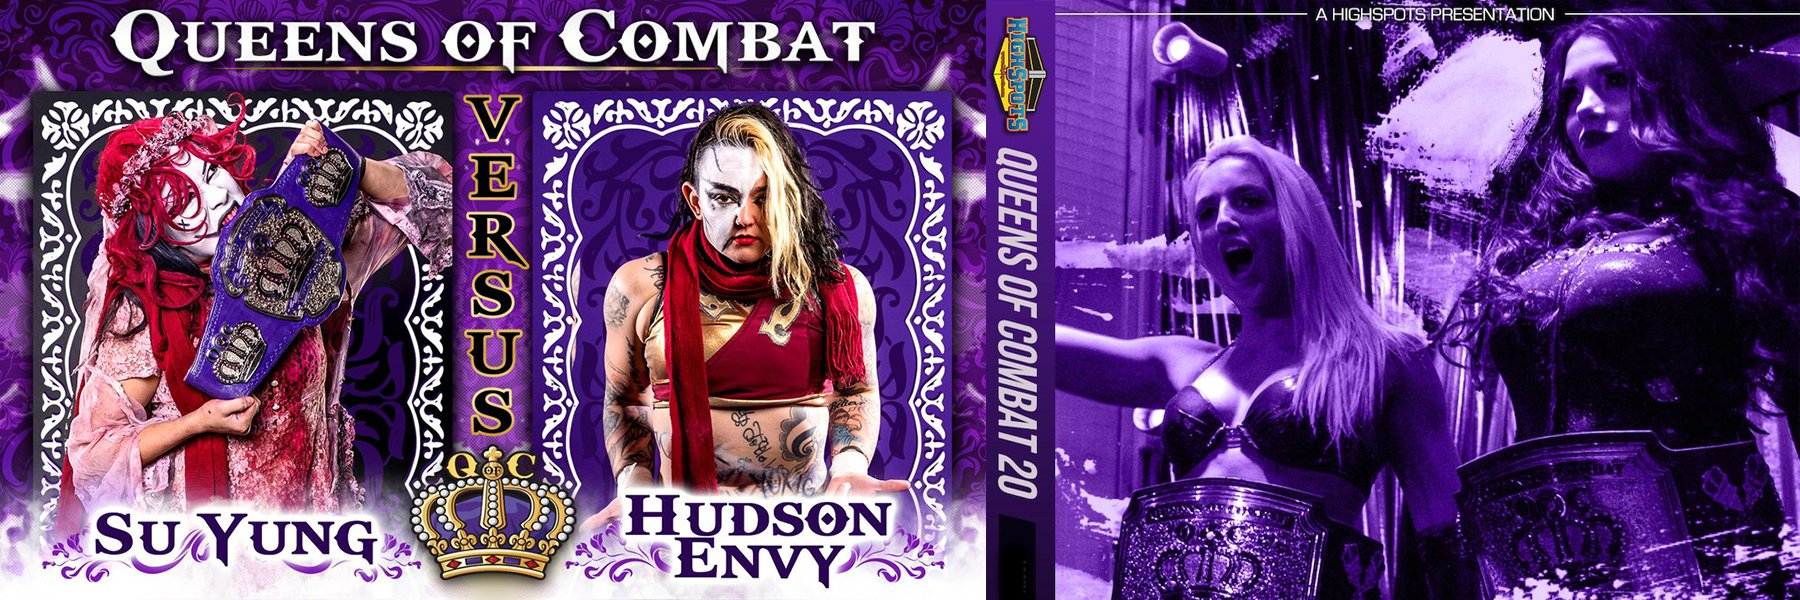 Steaming Now! Queens of Combat 20: Su Yung, Tessa Blanchard, Kiera Hogan